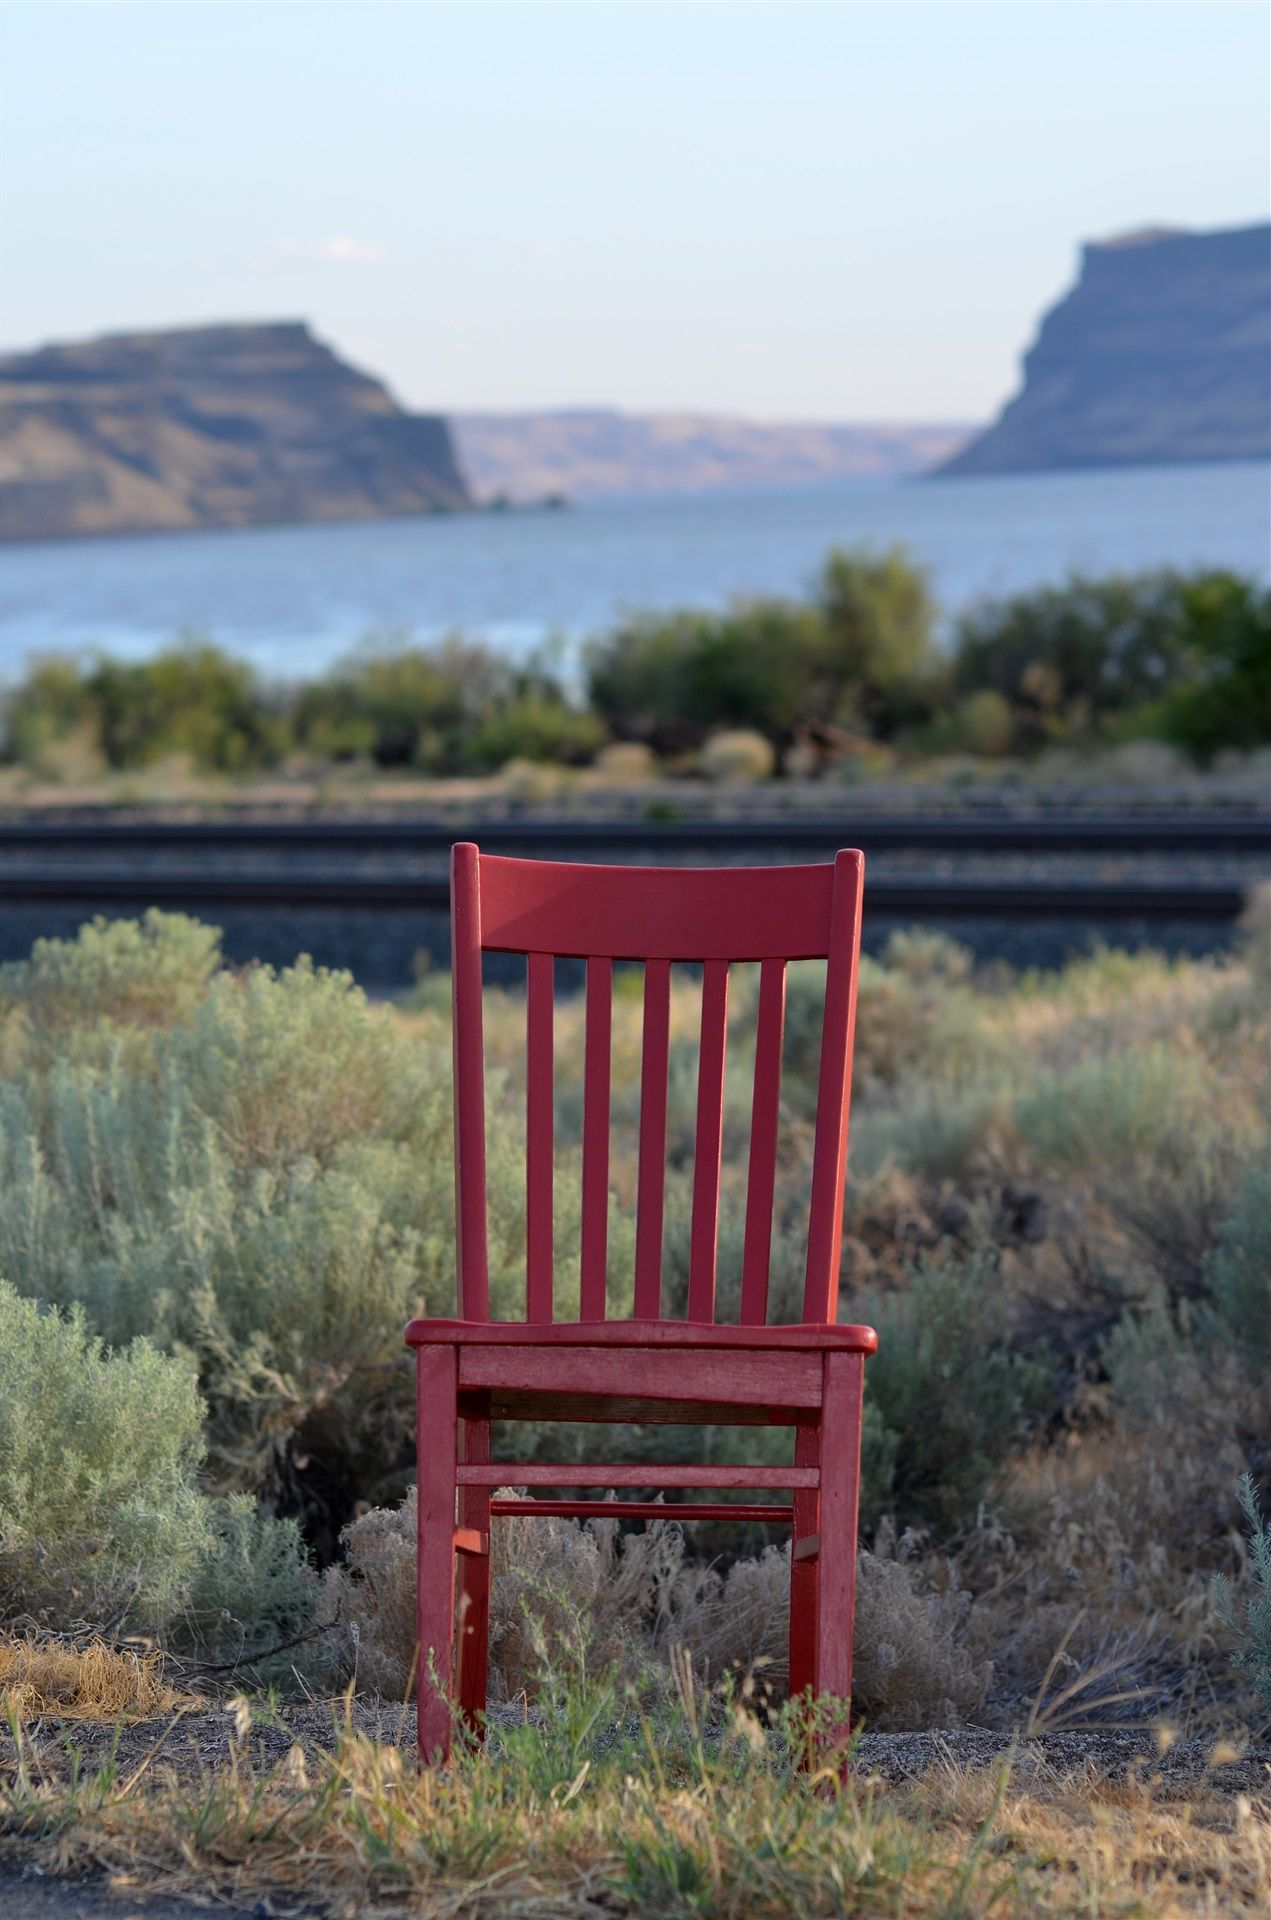 Red chair sitting amongst some brush with the bay and cliffsides in the background